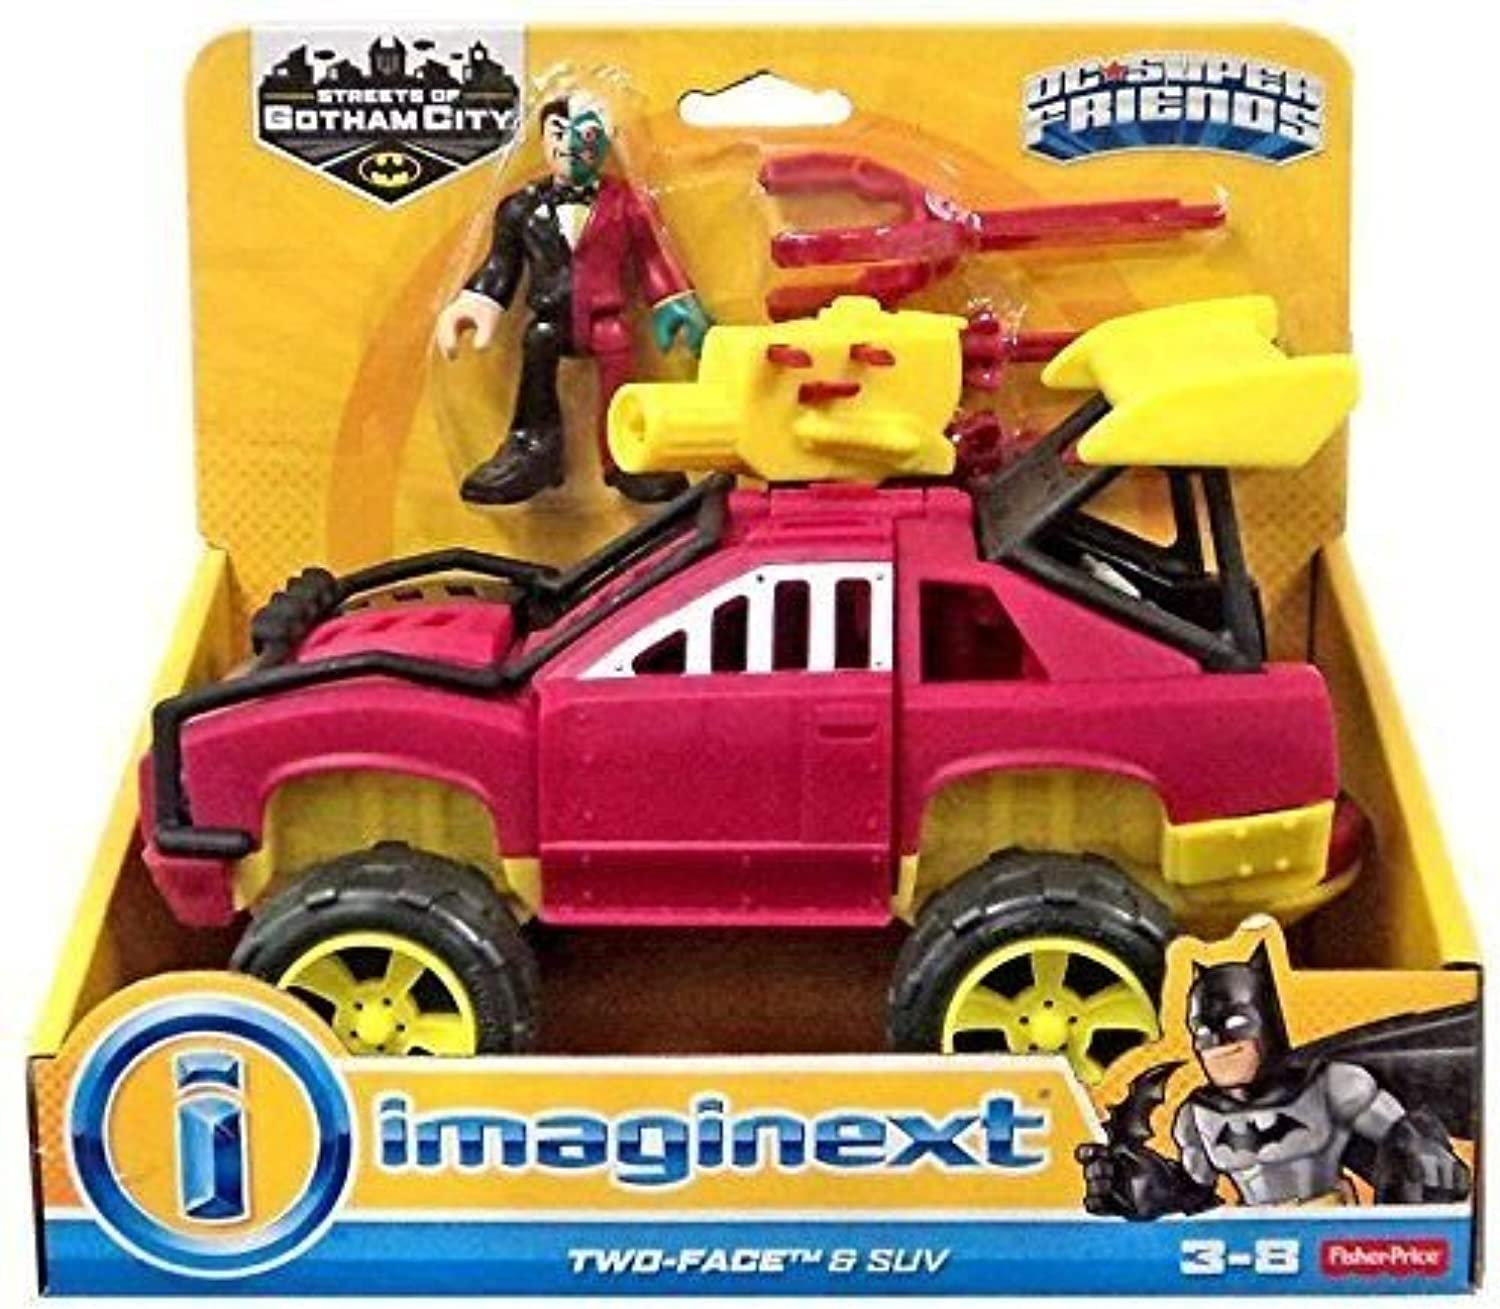 Price Imaginext Two Face & SUV DC Super Friends, g14e6ge4r-ge 4-tew6W211699